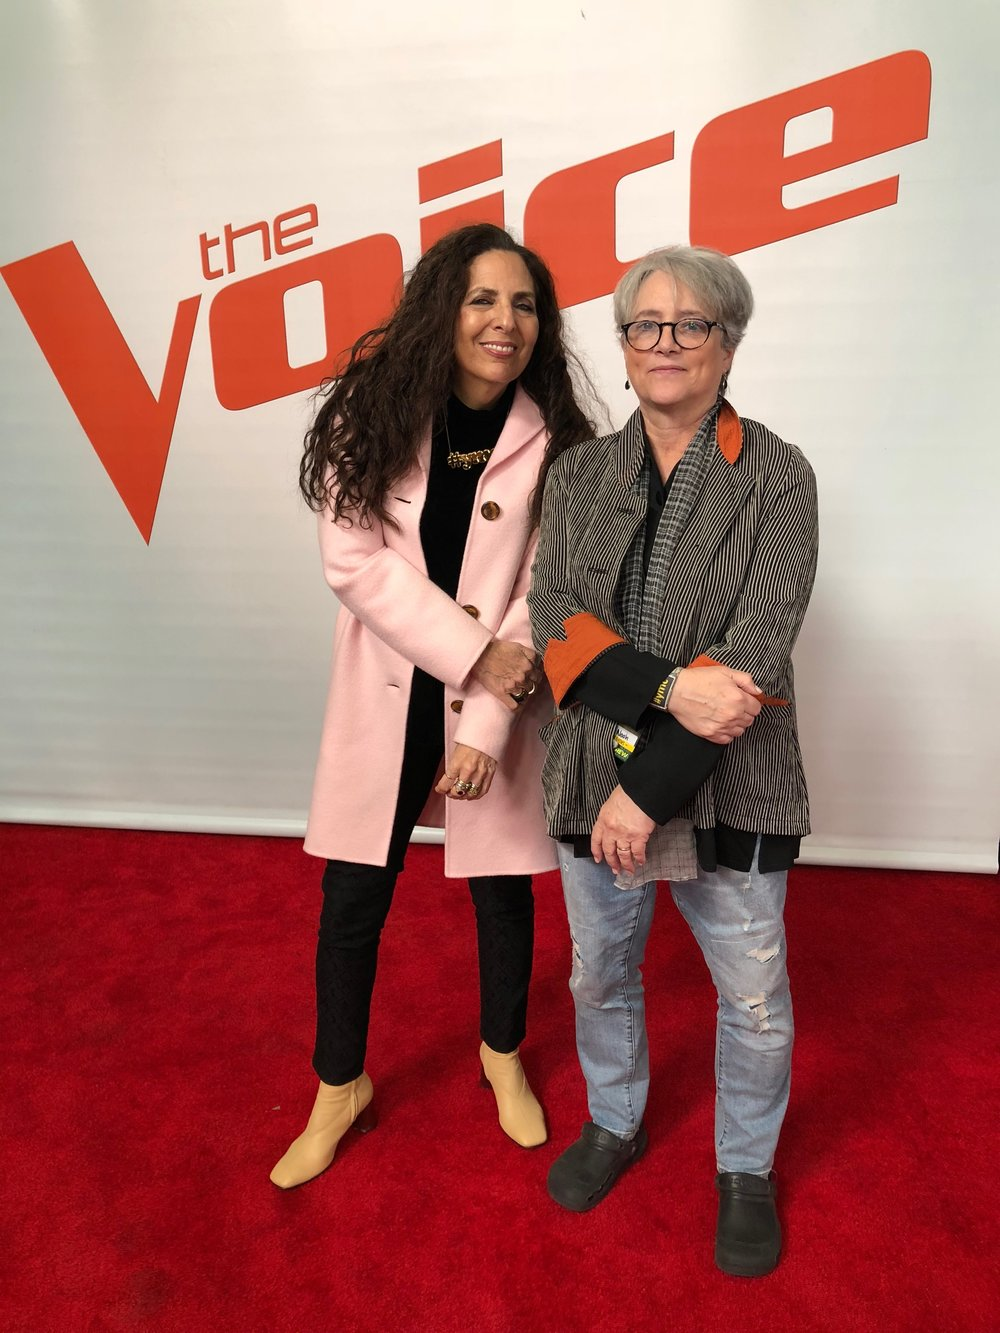 Cofounders Sharon Feldstein and Patsy Noah on set at The Voice